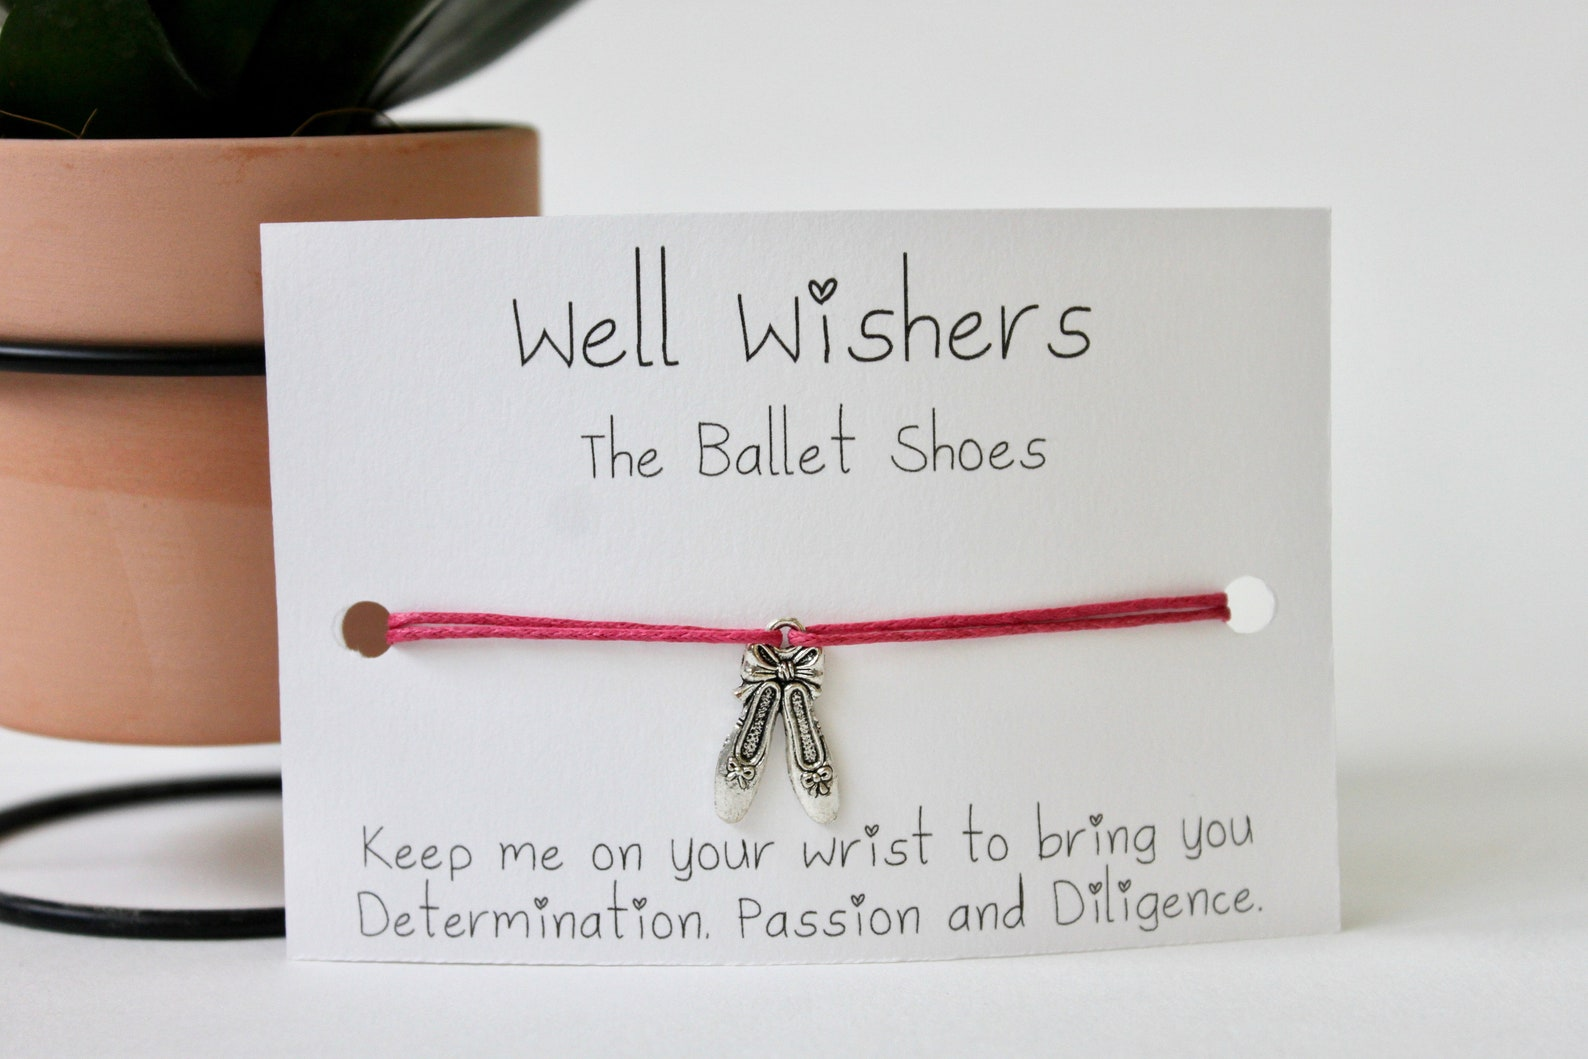 ballet shoes charm bracelet - determination, passion and diligence| well wisher, wish bracelet, bff gift, dance, ballerina, birt